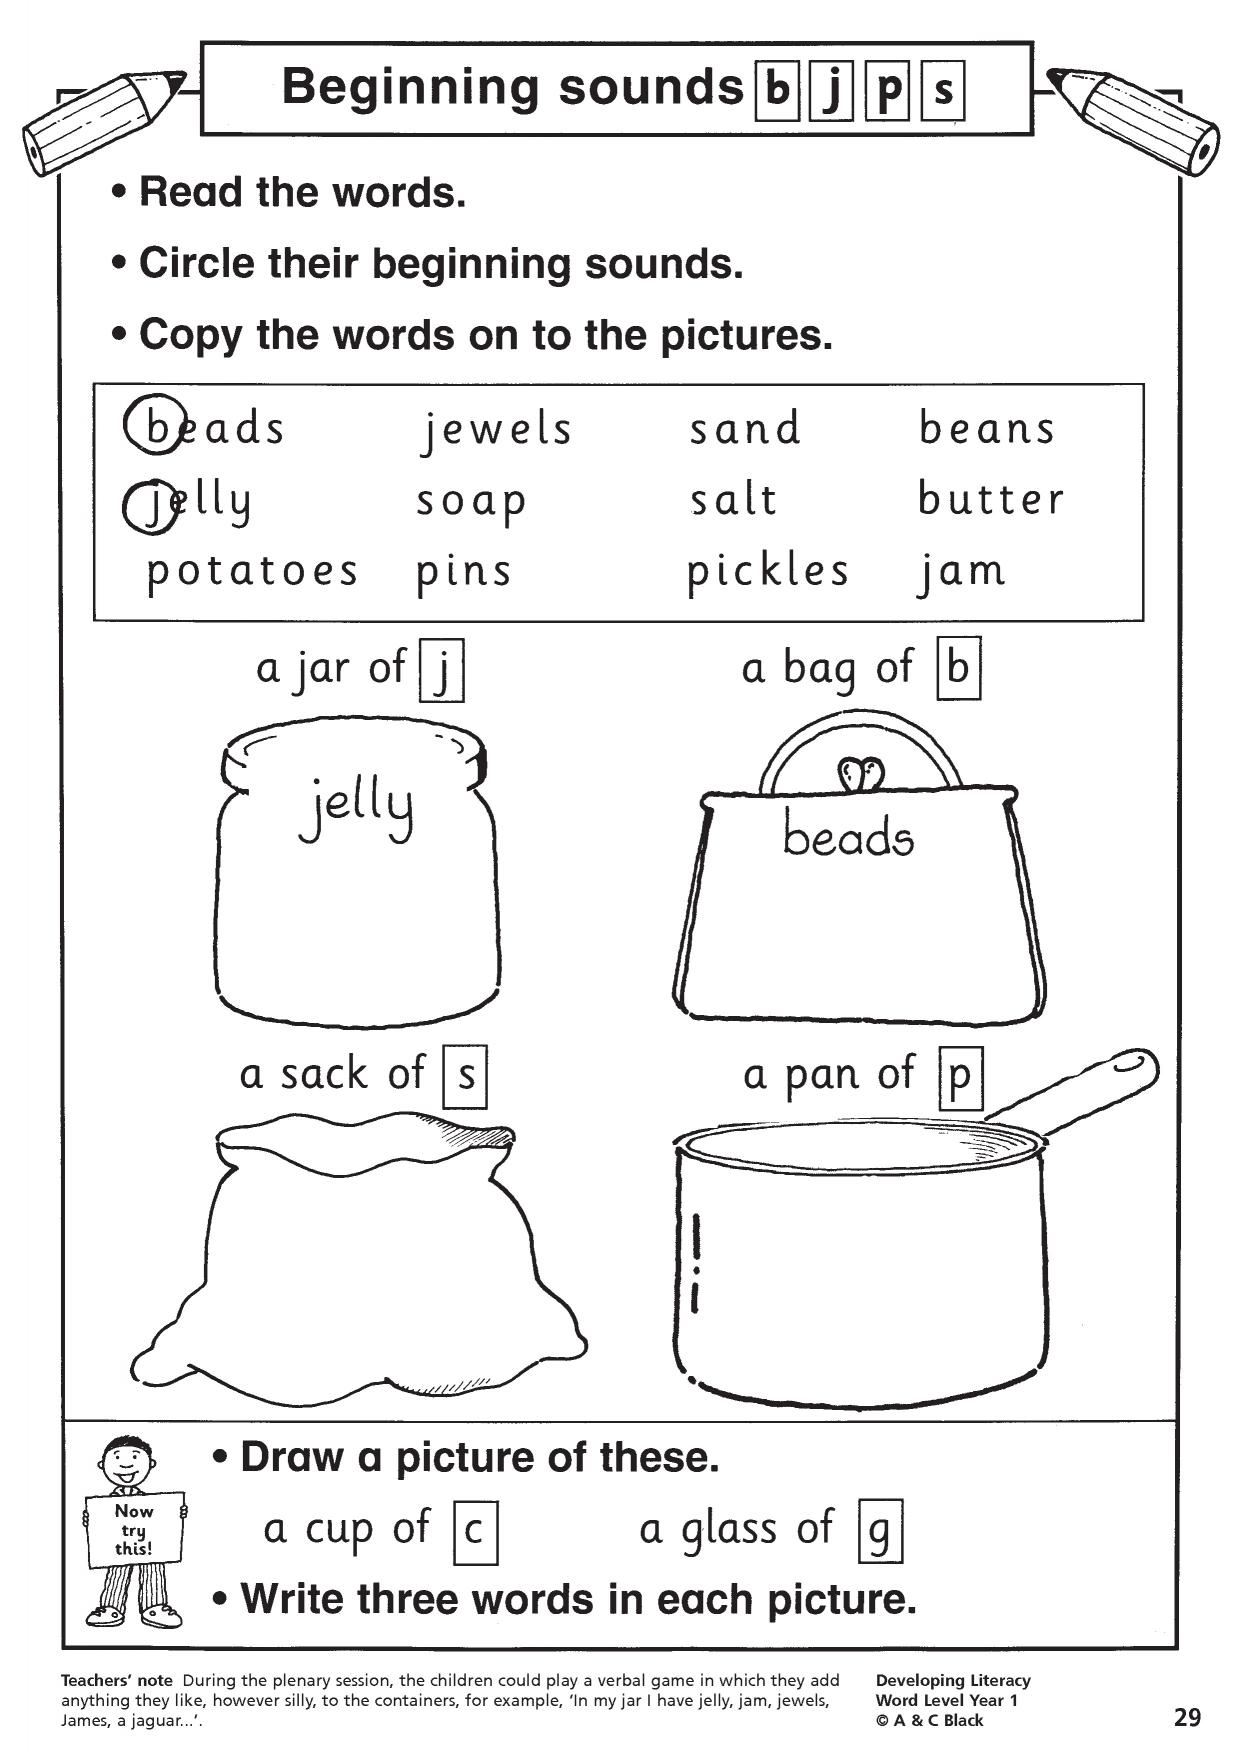 Beginning Sounds Bjps